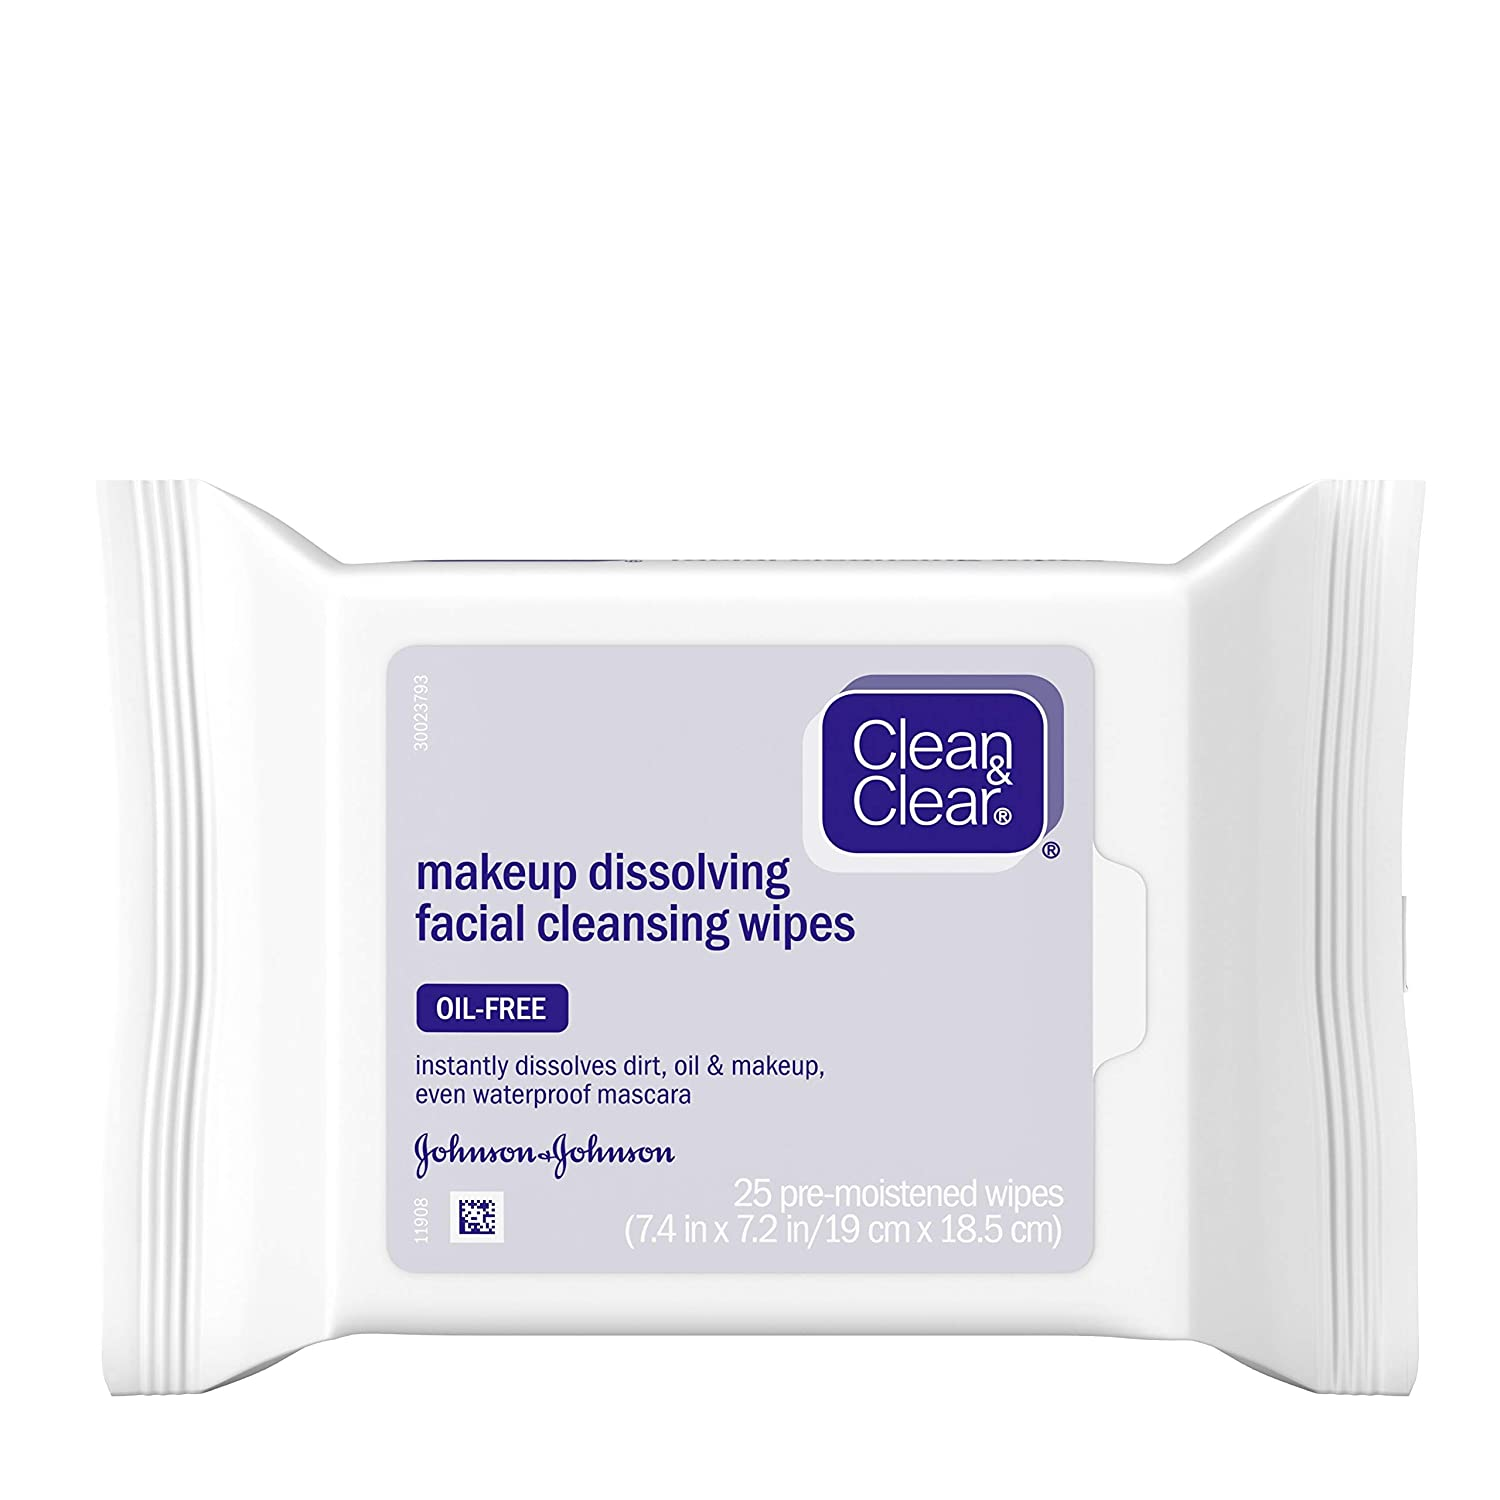 Clean & Clear Oil-Free Makeup Dissolving Facial Cleansing Wipes to Remove Dirt, Oil, Makeup & Waterproof Mascara, 25 ct.: Beauty